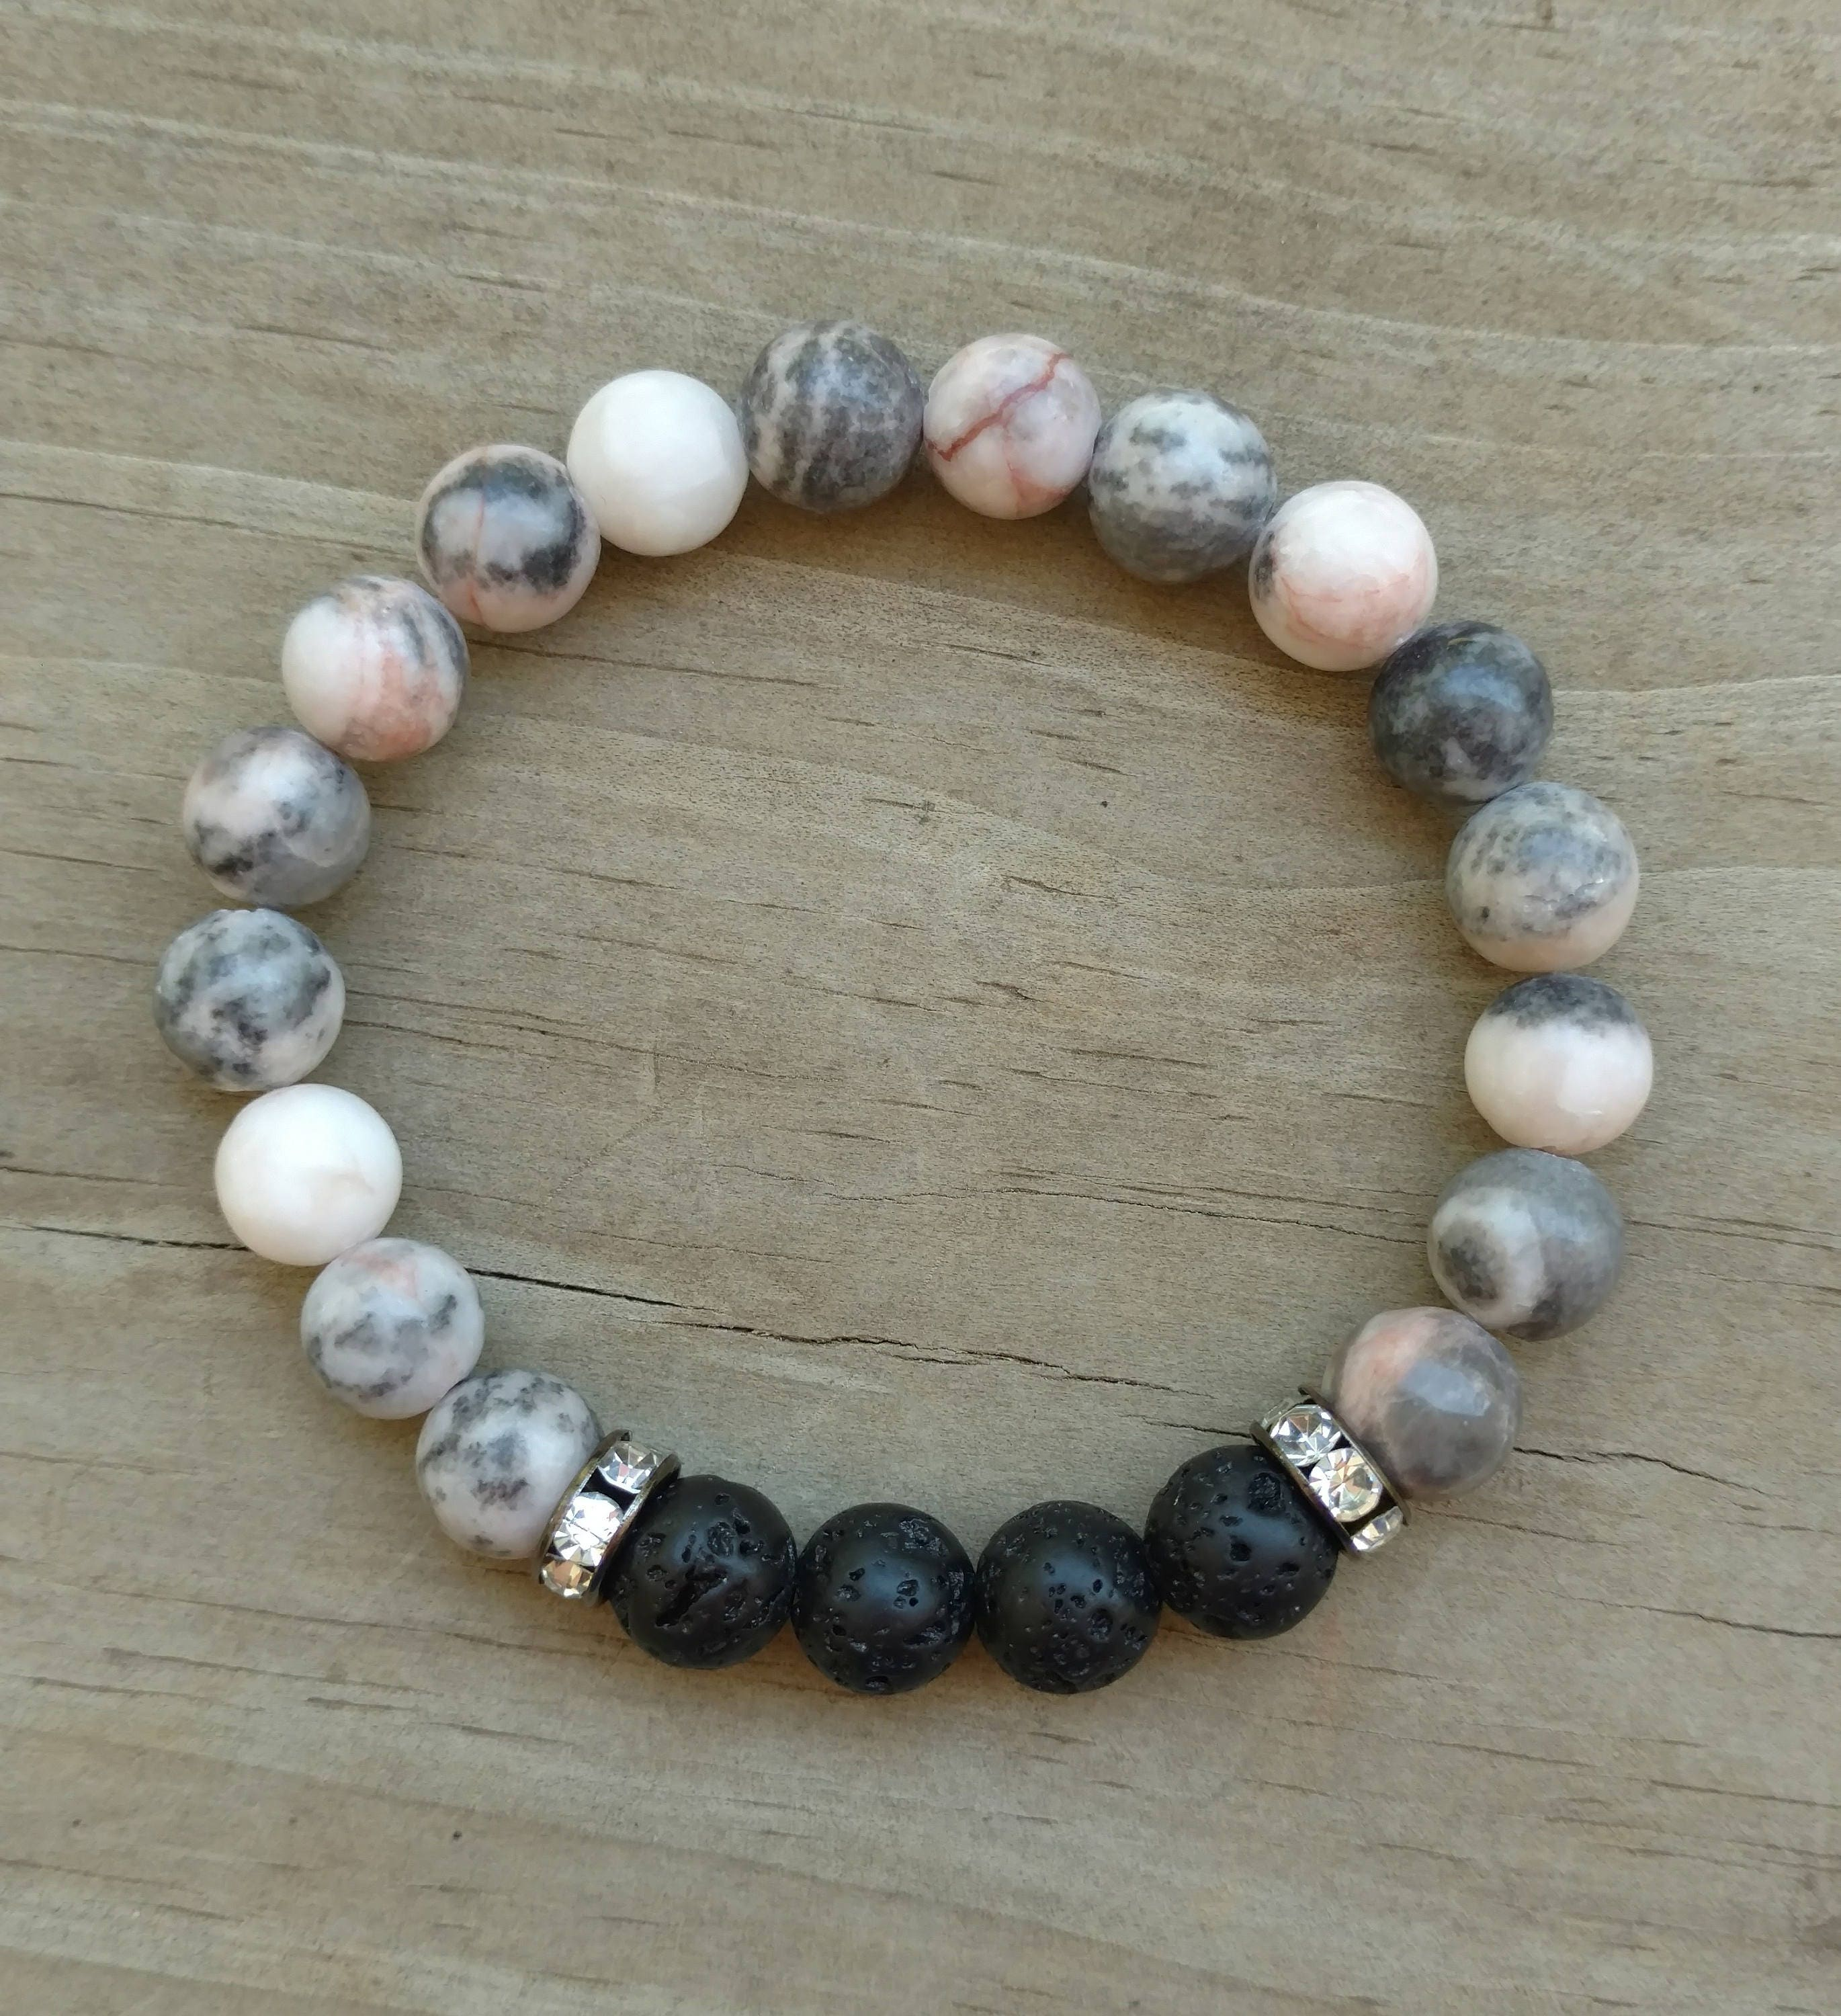 stone natural west bracelet collections layered s bracelets double crucible bead mens men products wide